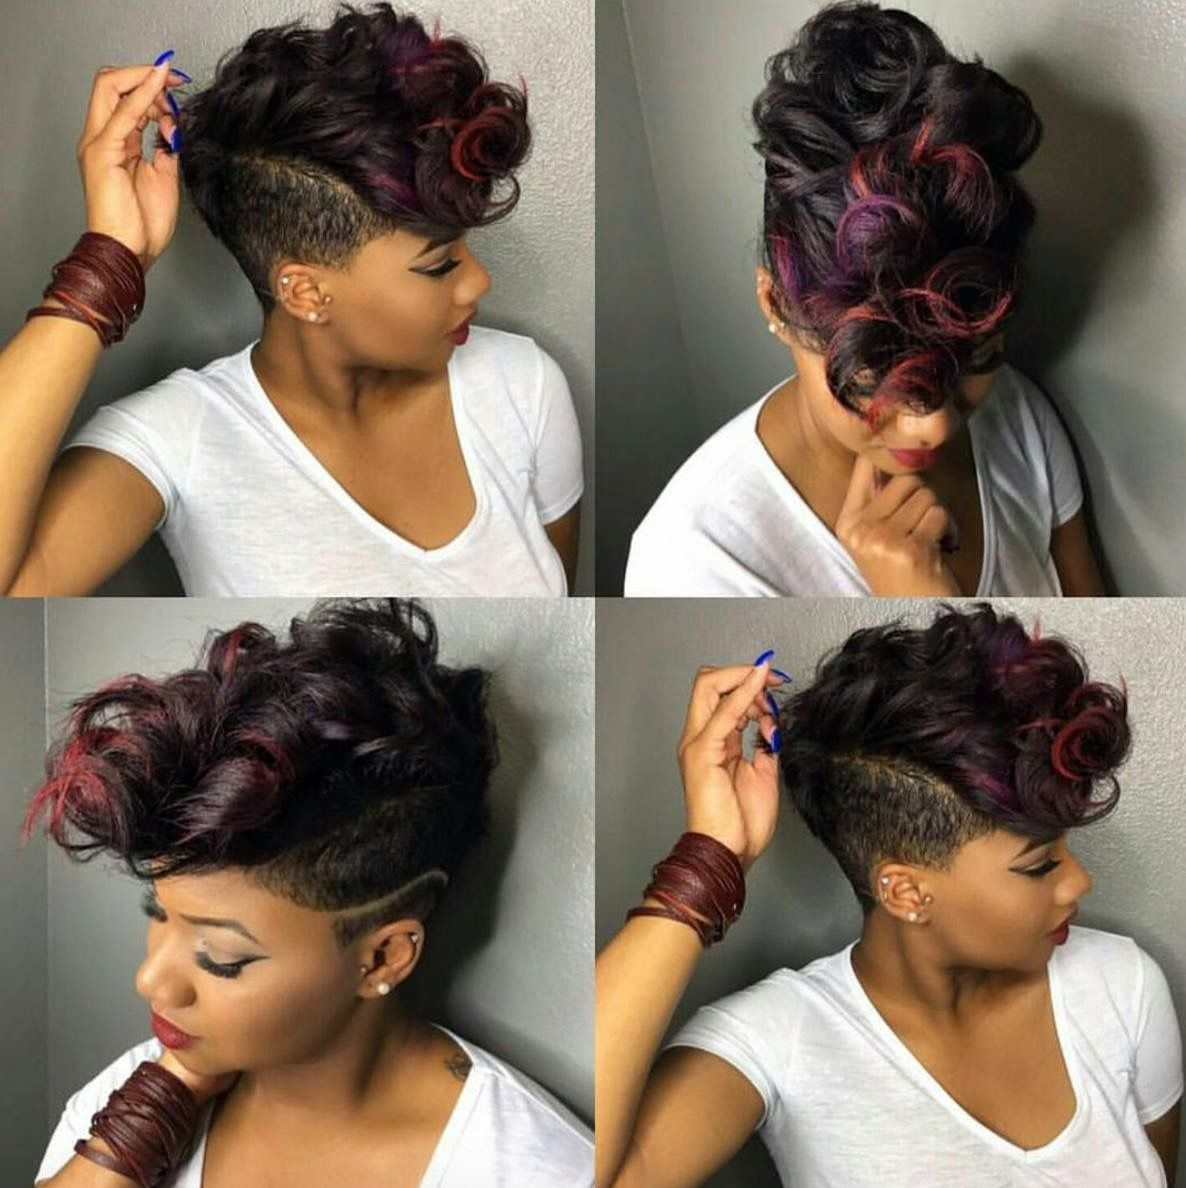 Pin by dea brinson on crown and glory pinterest hair hair